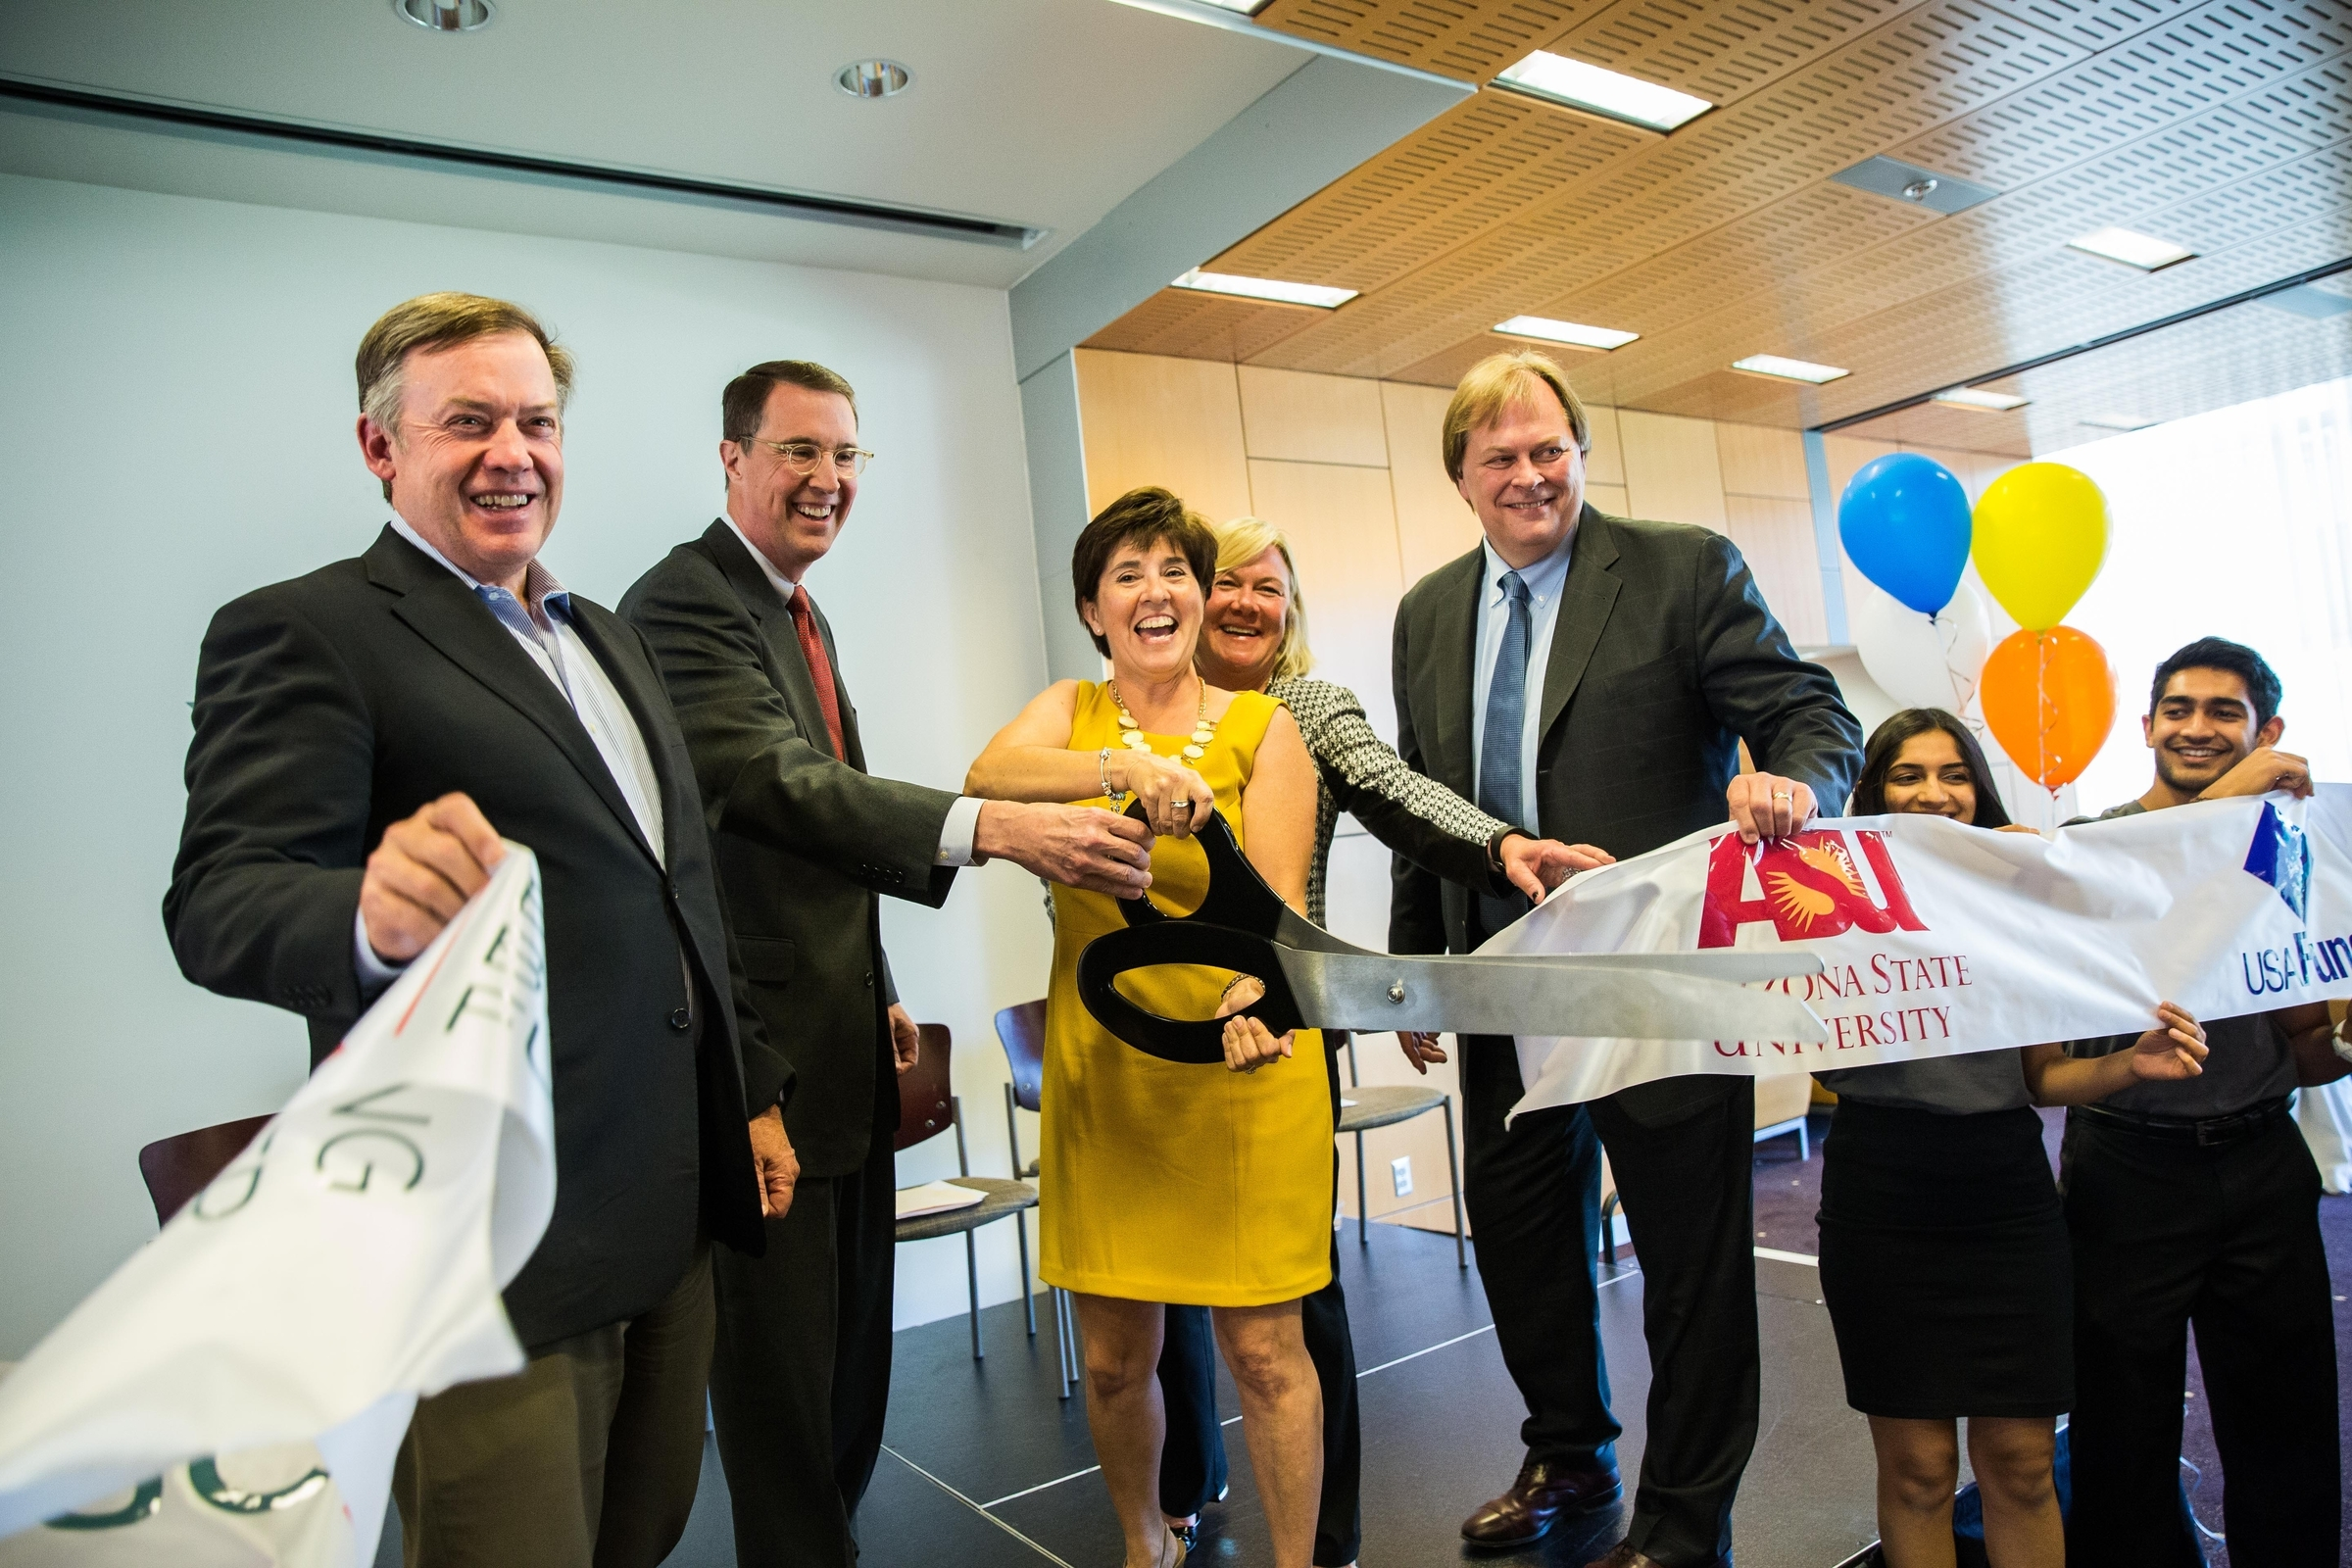 A ribbon-cutting at the PayPal-ASU partnership reception.